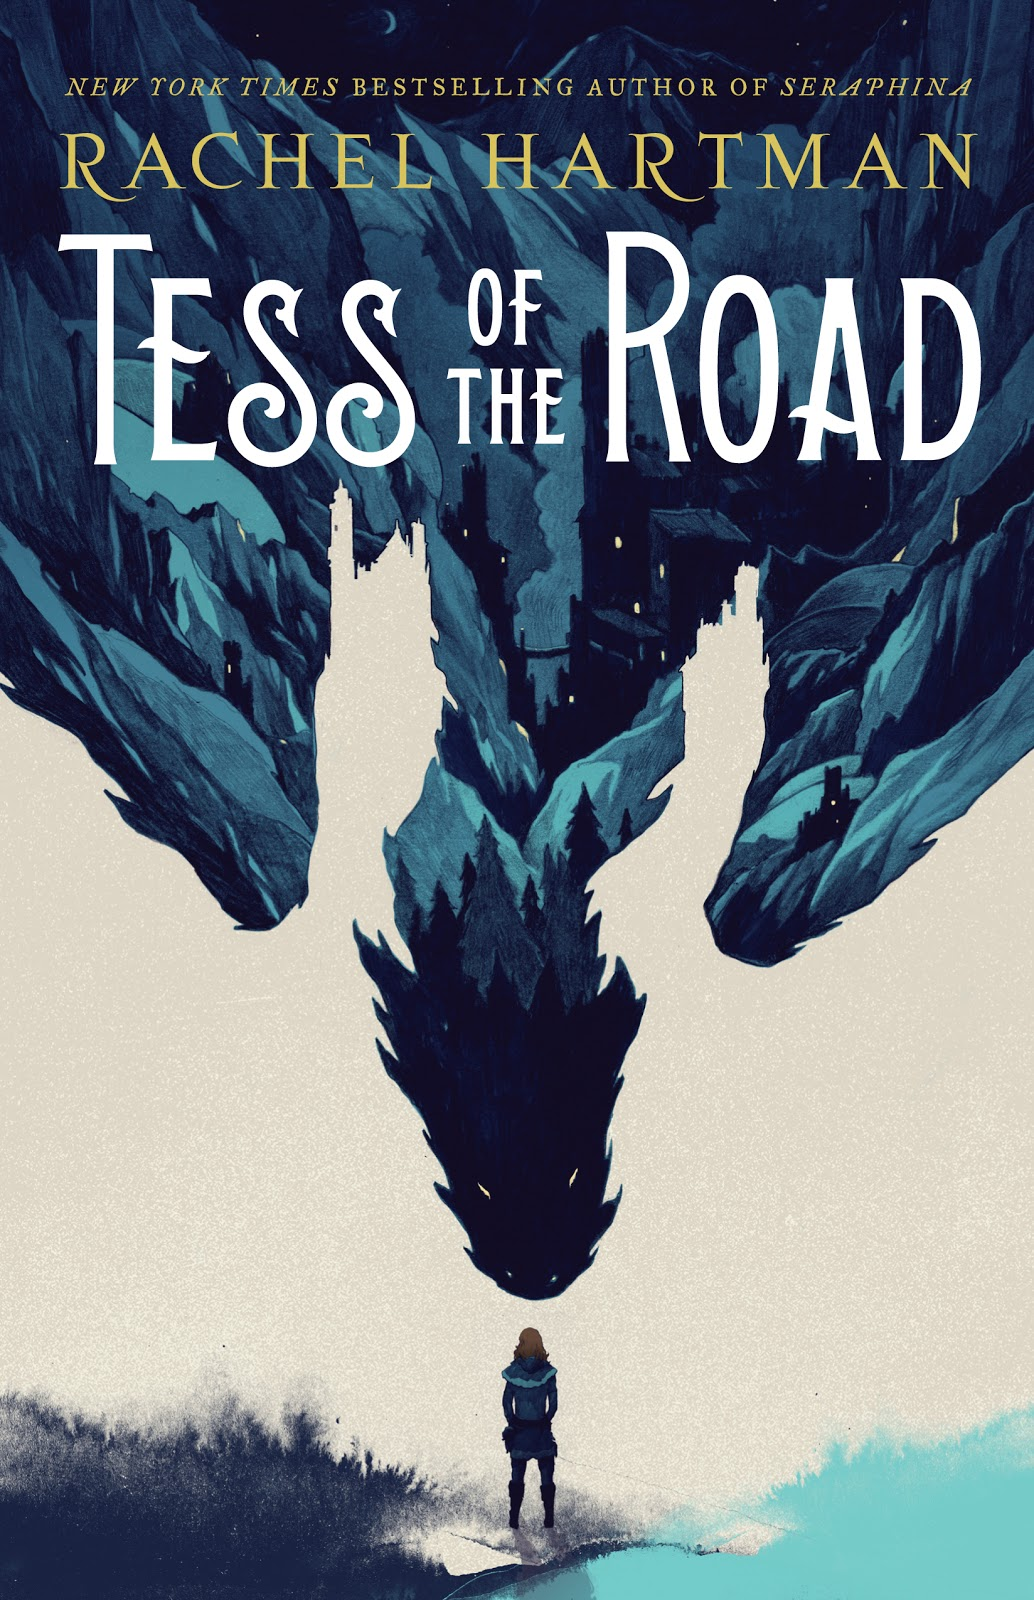 Tess of the Road (Rachel Hartman)